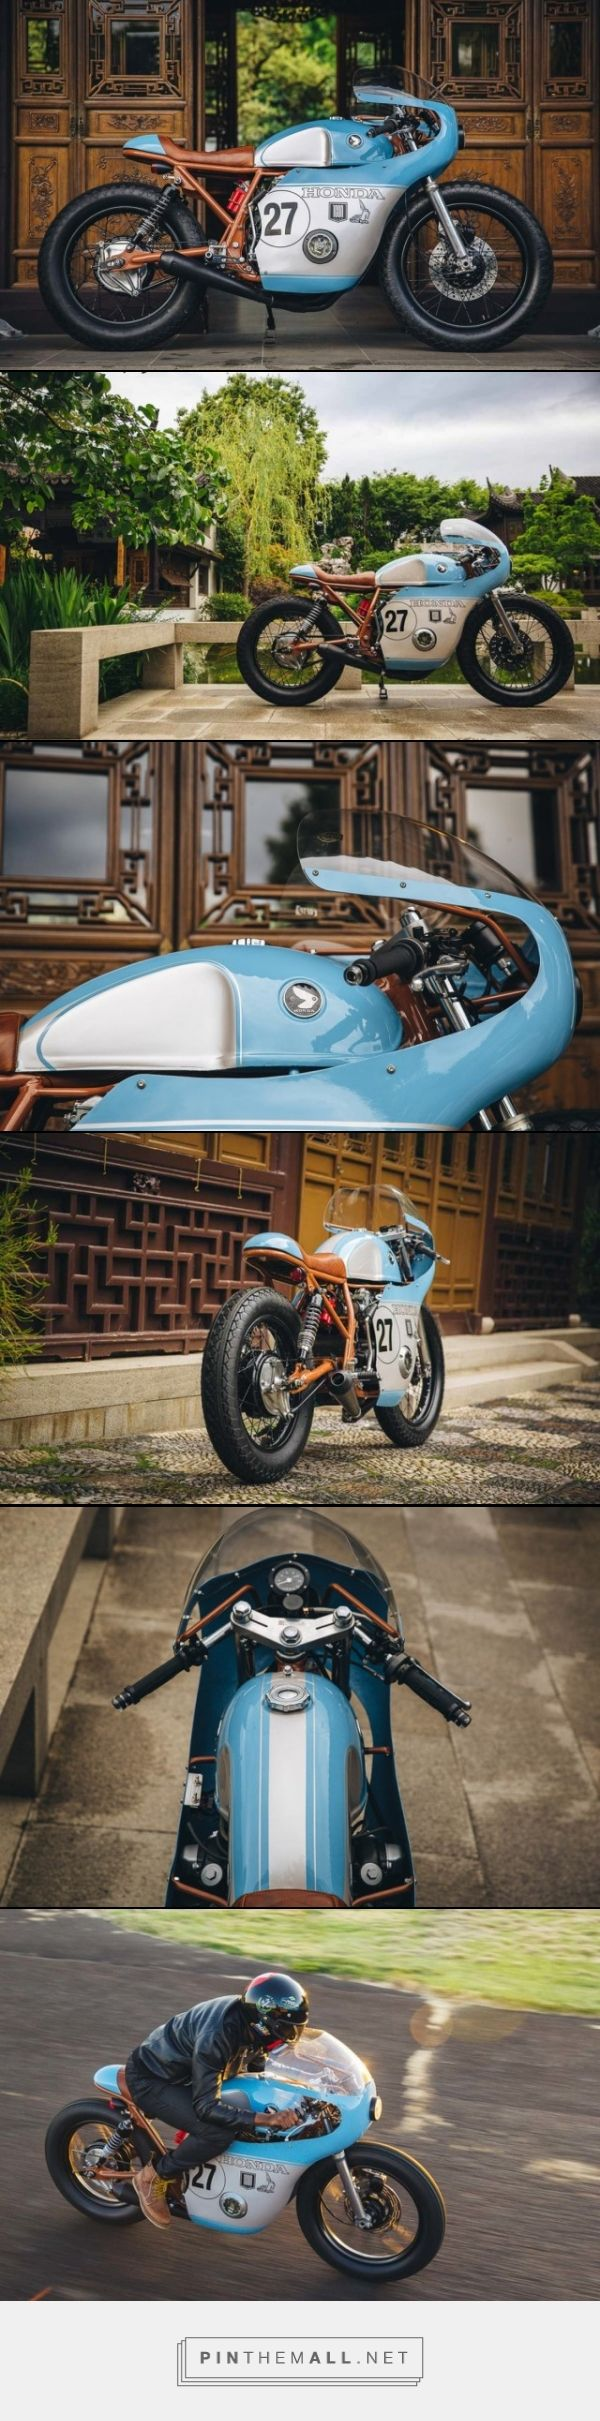 1977 Honda CB 550 by Little Horse Cycles [CFCM]